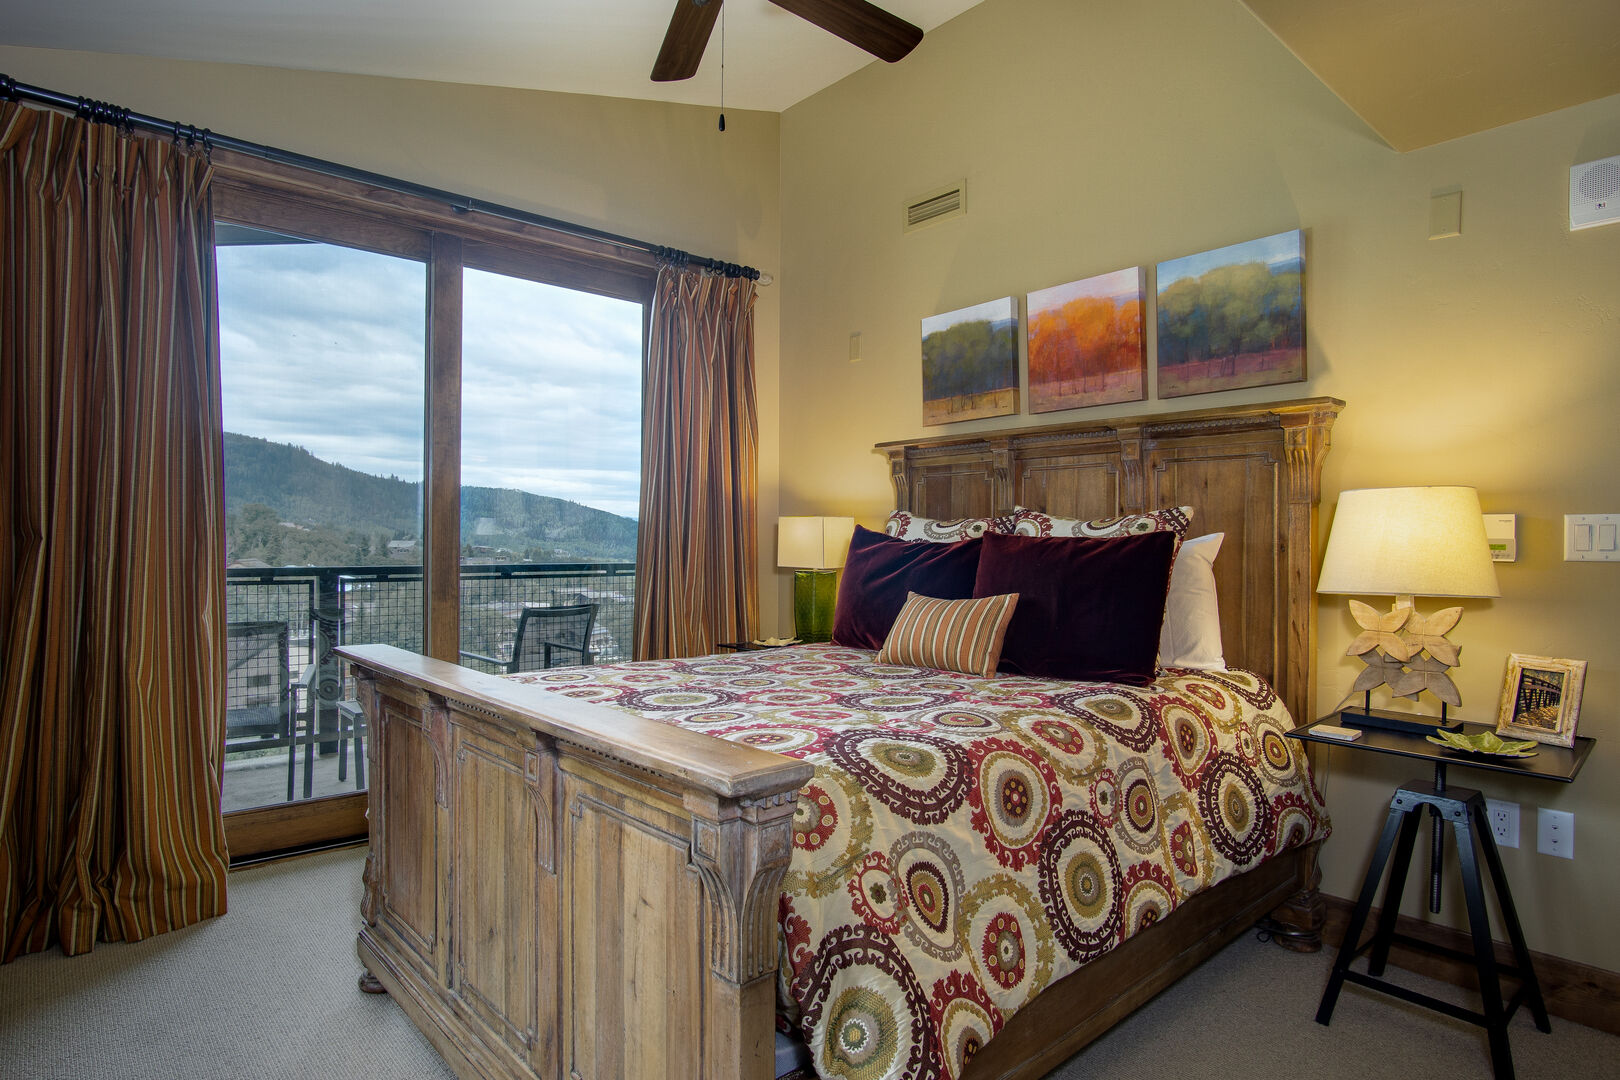 Bedroom with Large Bed, Nightstands, Ceiling Fan, and Sliding Doors to the Balcony.